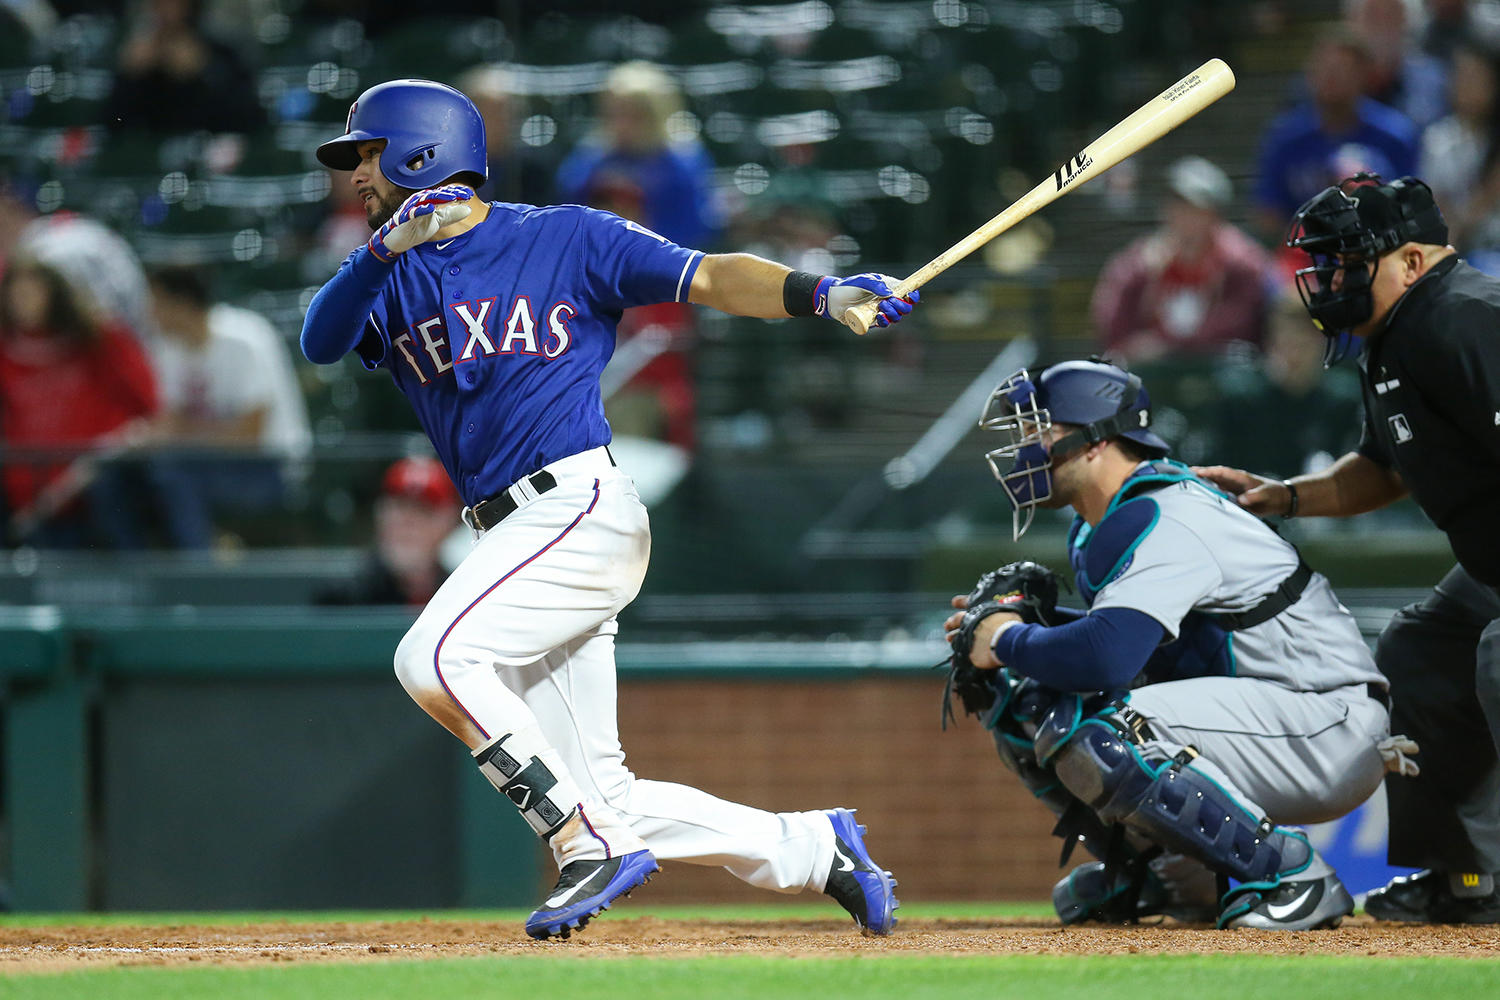 Former Round Rock Express infielder Isiah Kiner-Falefa donated the <em>Chupacabras</em> cap that he wore April 8 to the Baseball Hall of Fame. Two days later, Kiner-Falefa was called up to the Texas Rangers. (Kelly Gavin/Texas Rangers)